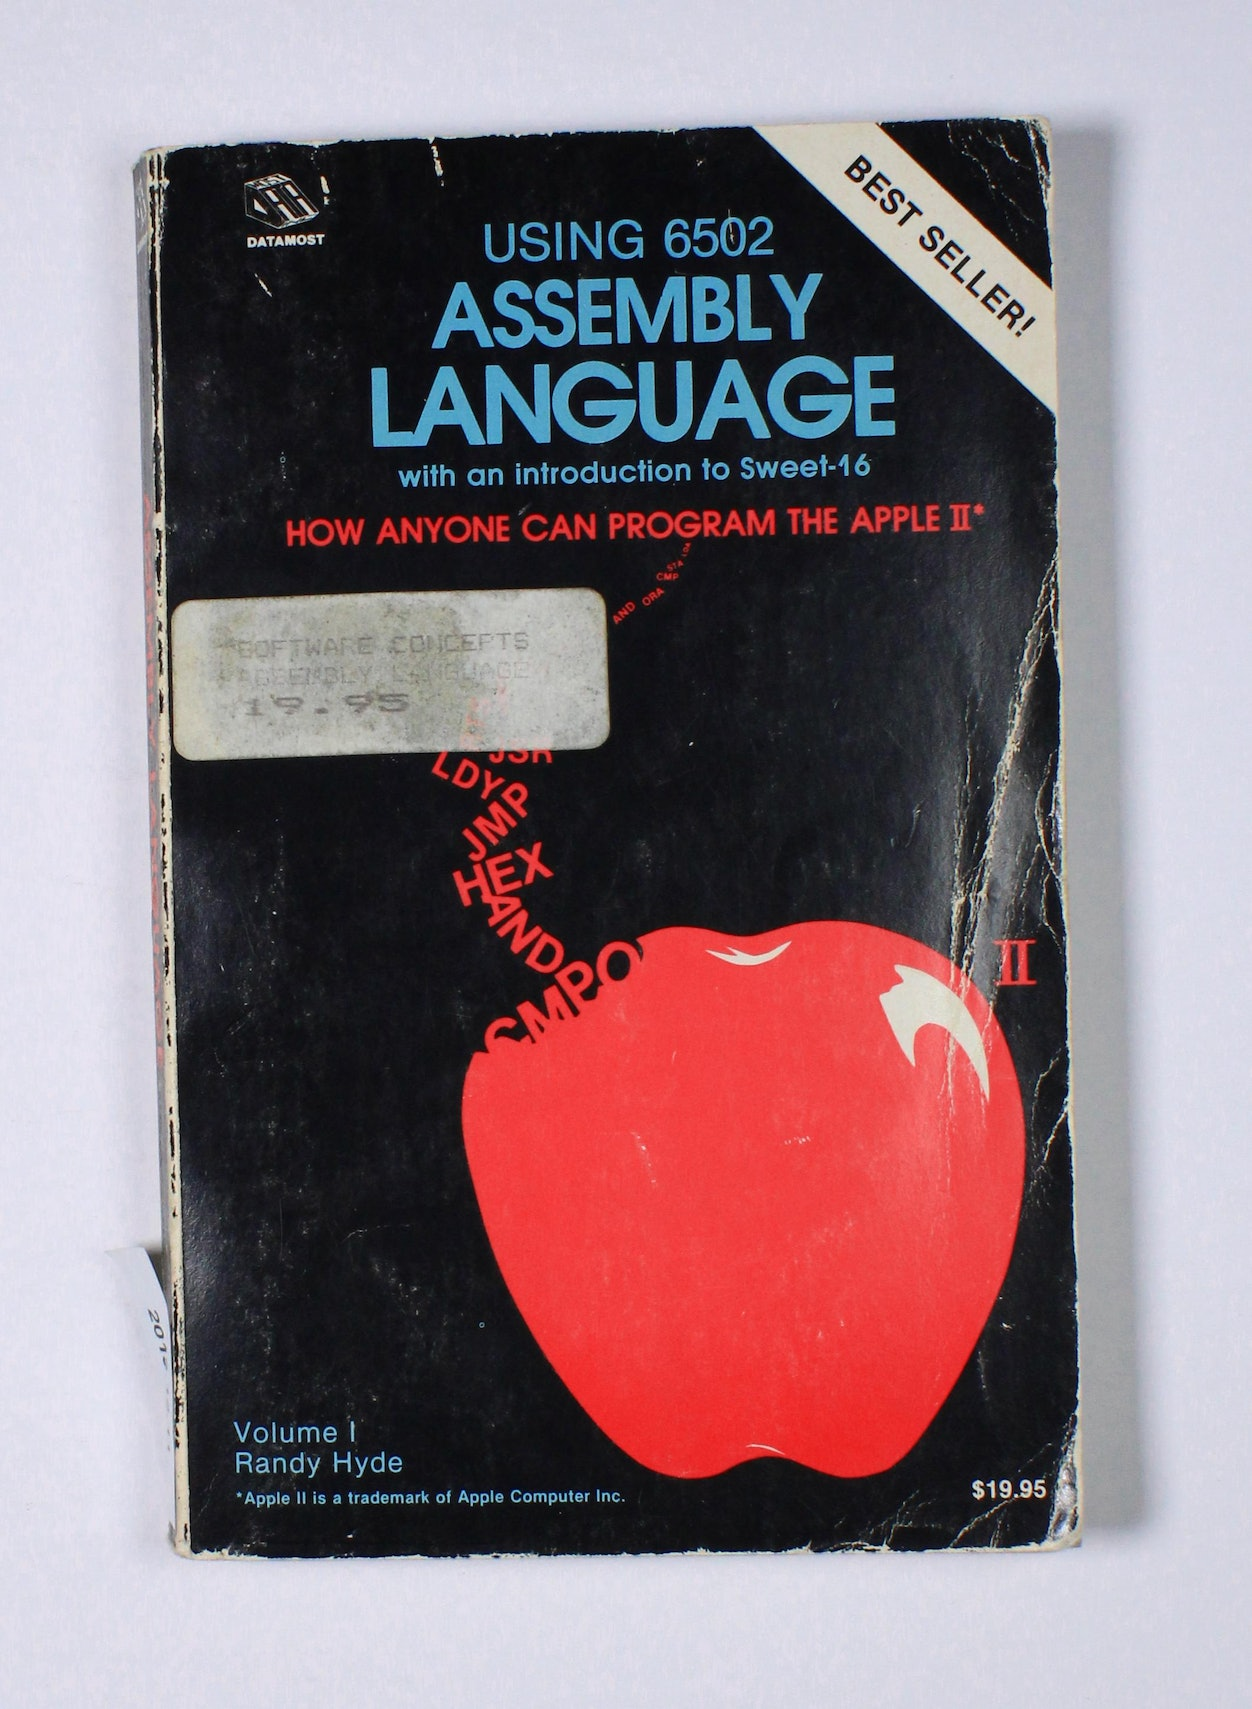 Using 6502 Assembly Language: How Anyone Can Program the Apple II